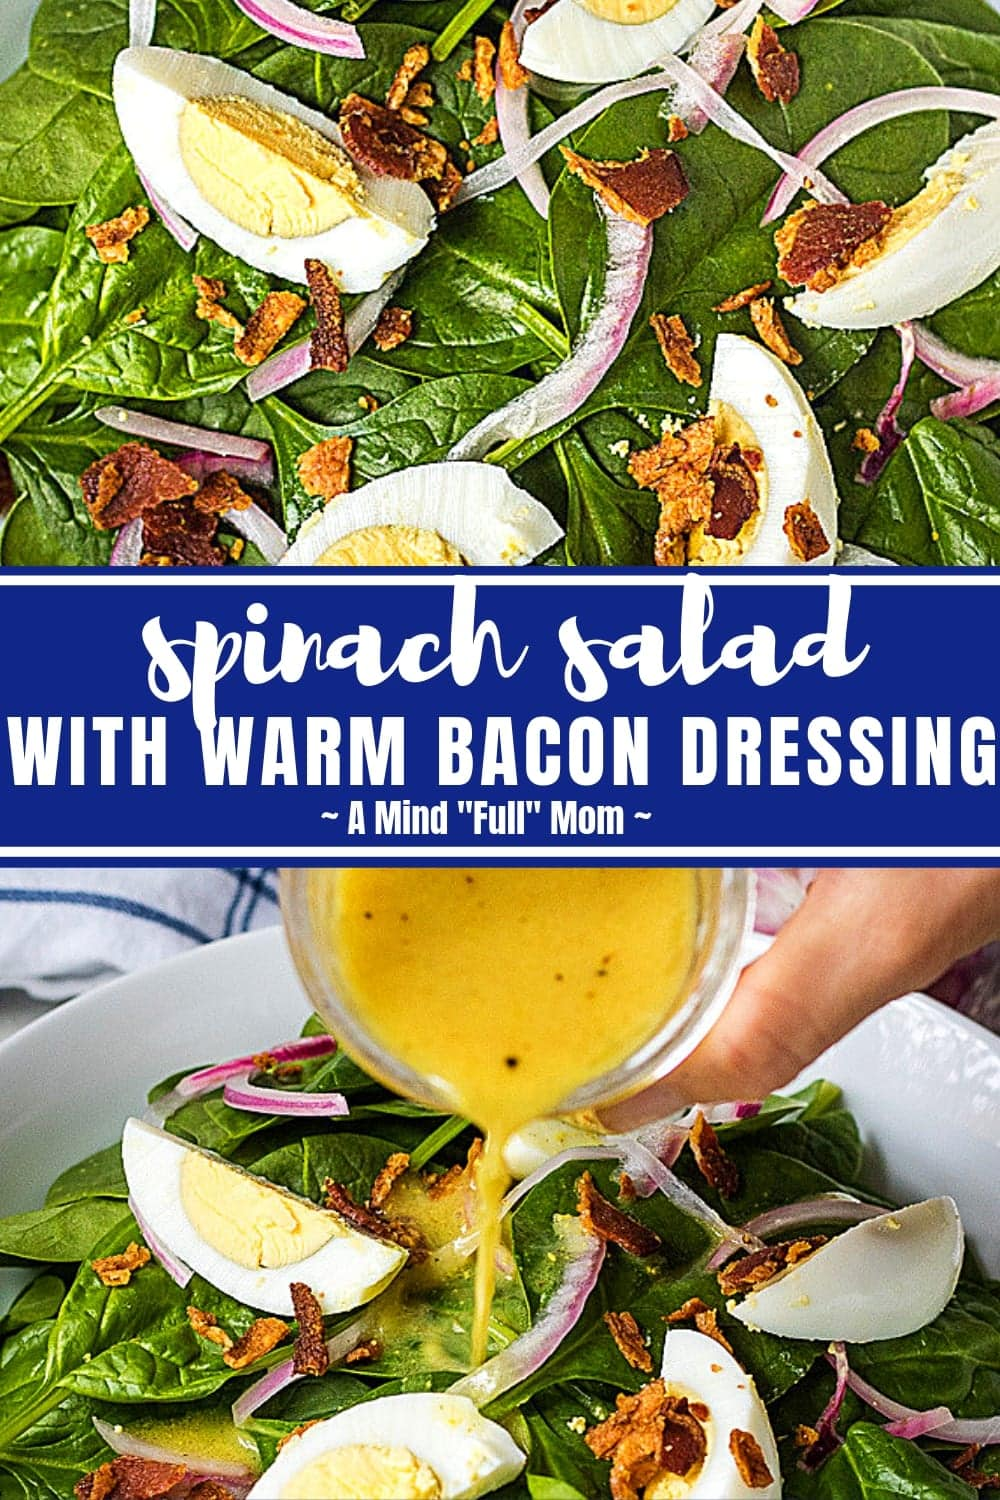 Spinach Salad with Warm Bacon Dressing and hard boiled eggs is a classic favorite and perfect for entertaining or to compliment a family meal. This spinach salad is simple to make and wins over everyone--even people who THINK they don't like spinach! #salad #spinach